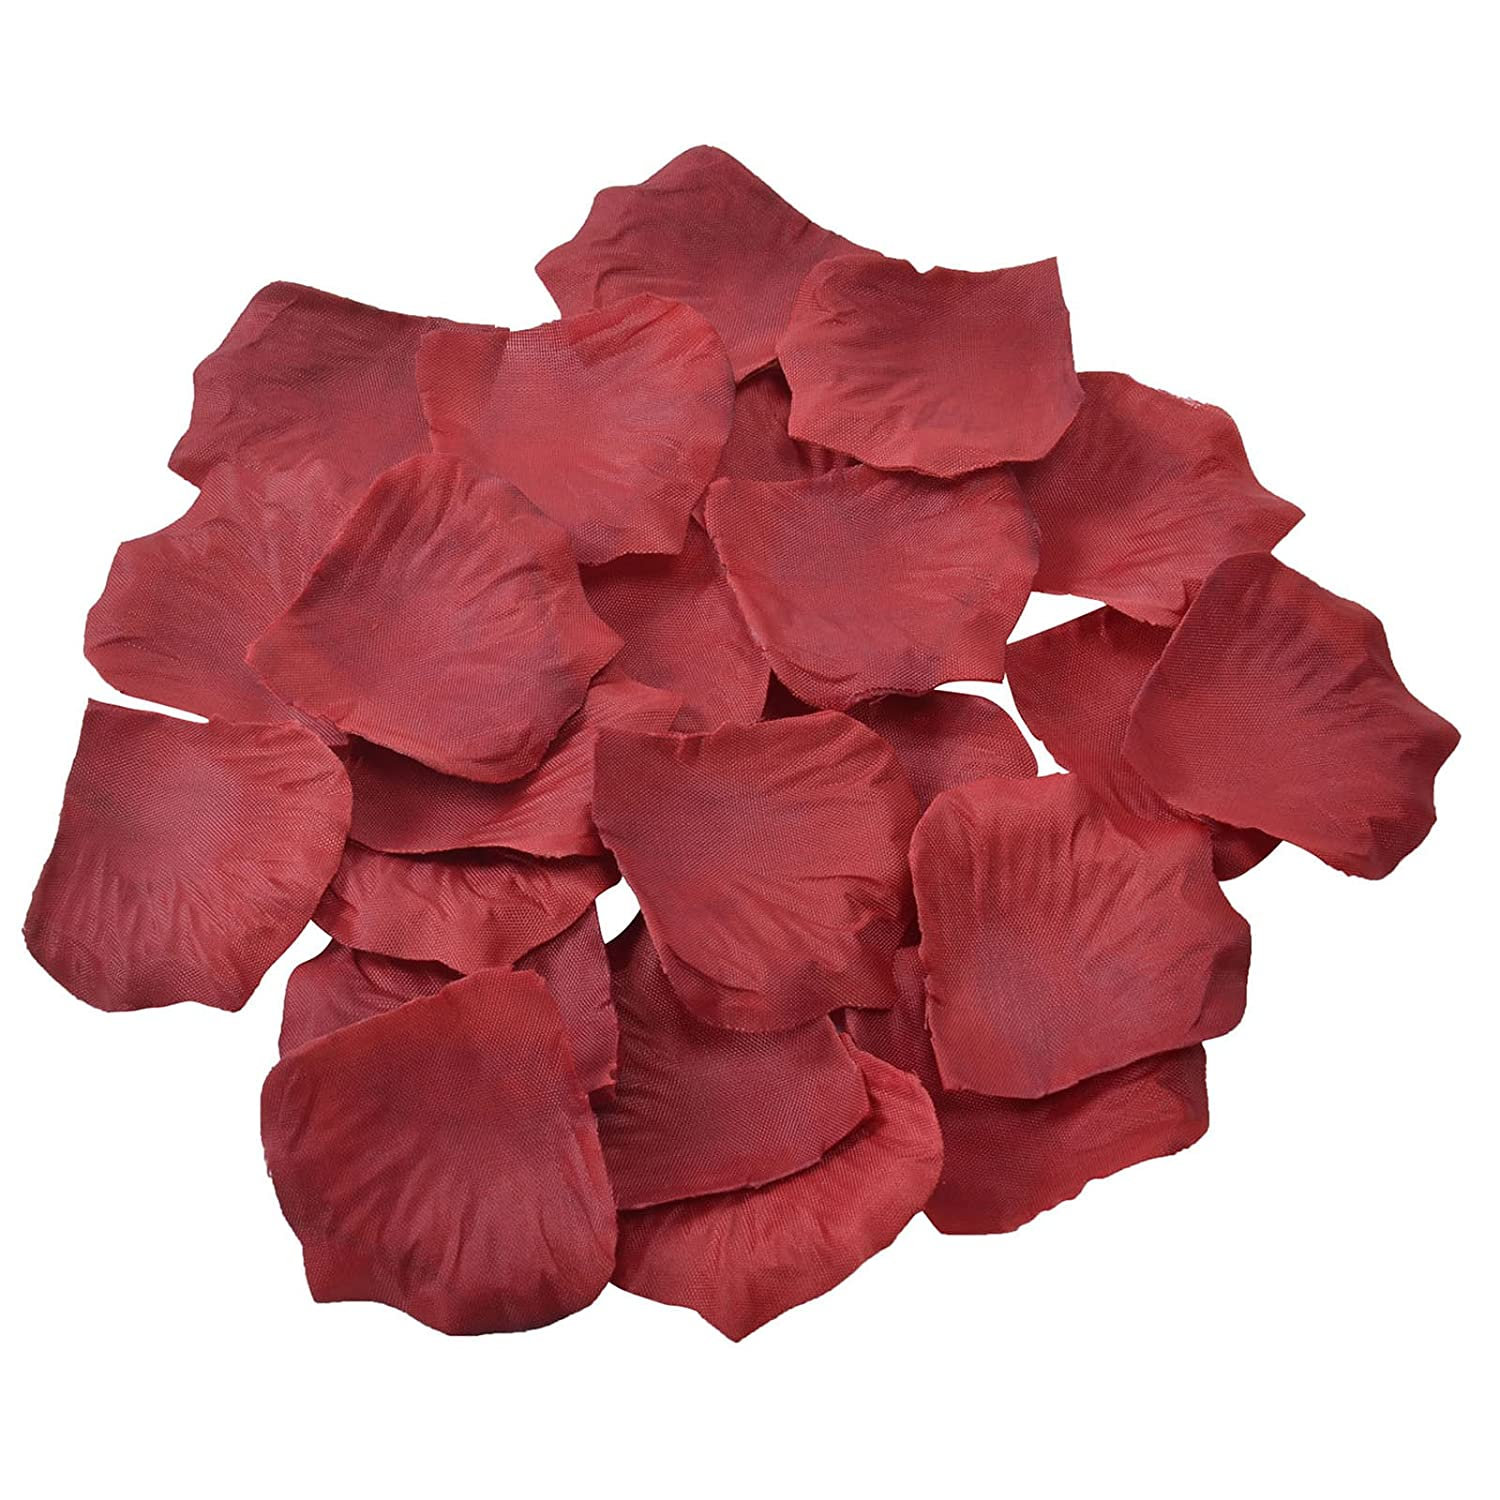 Doutop Rose Petals Silk Artificial Flowers Table Confetti Wedding Favours Scatter Party Flora Petal Favor Bridal Shower 1000pcs (White)